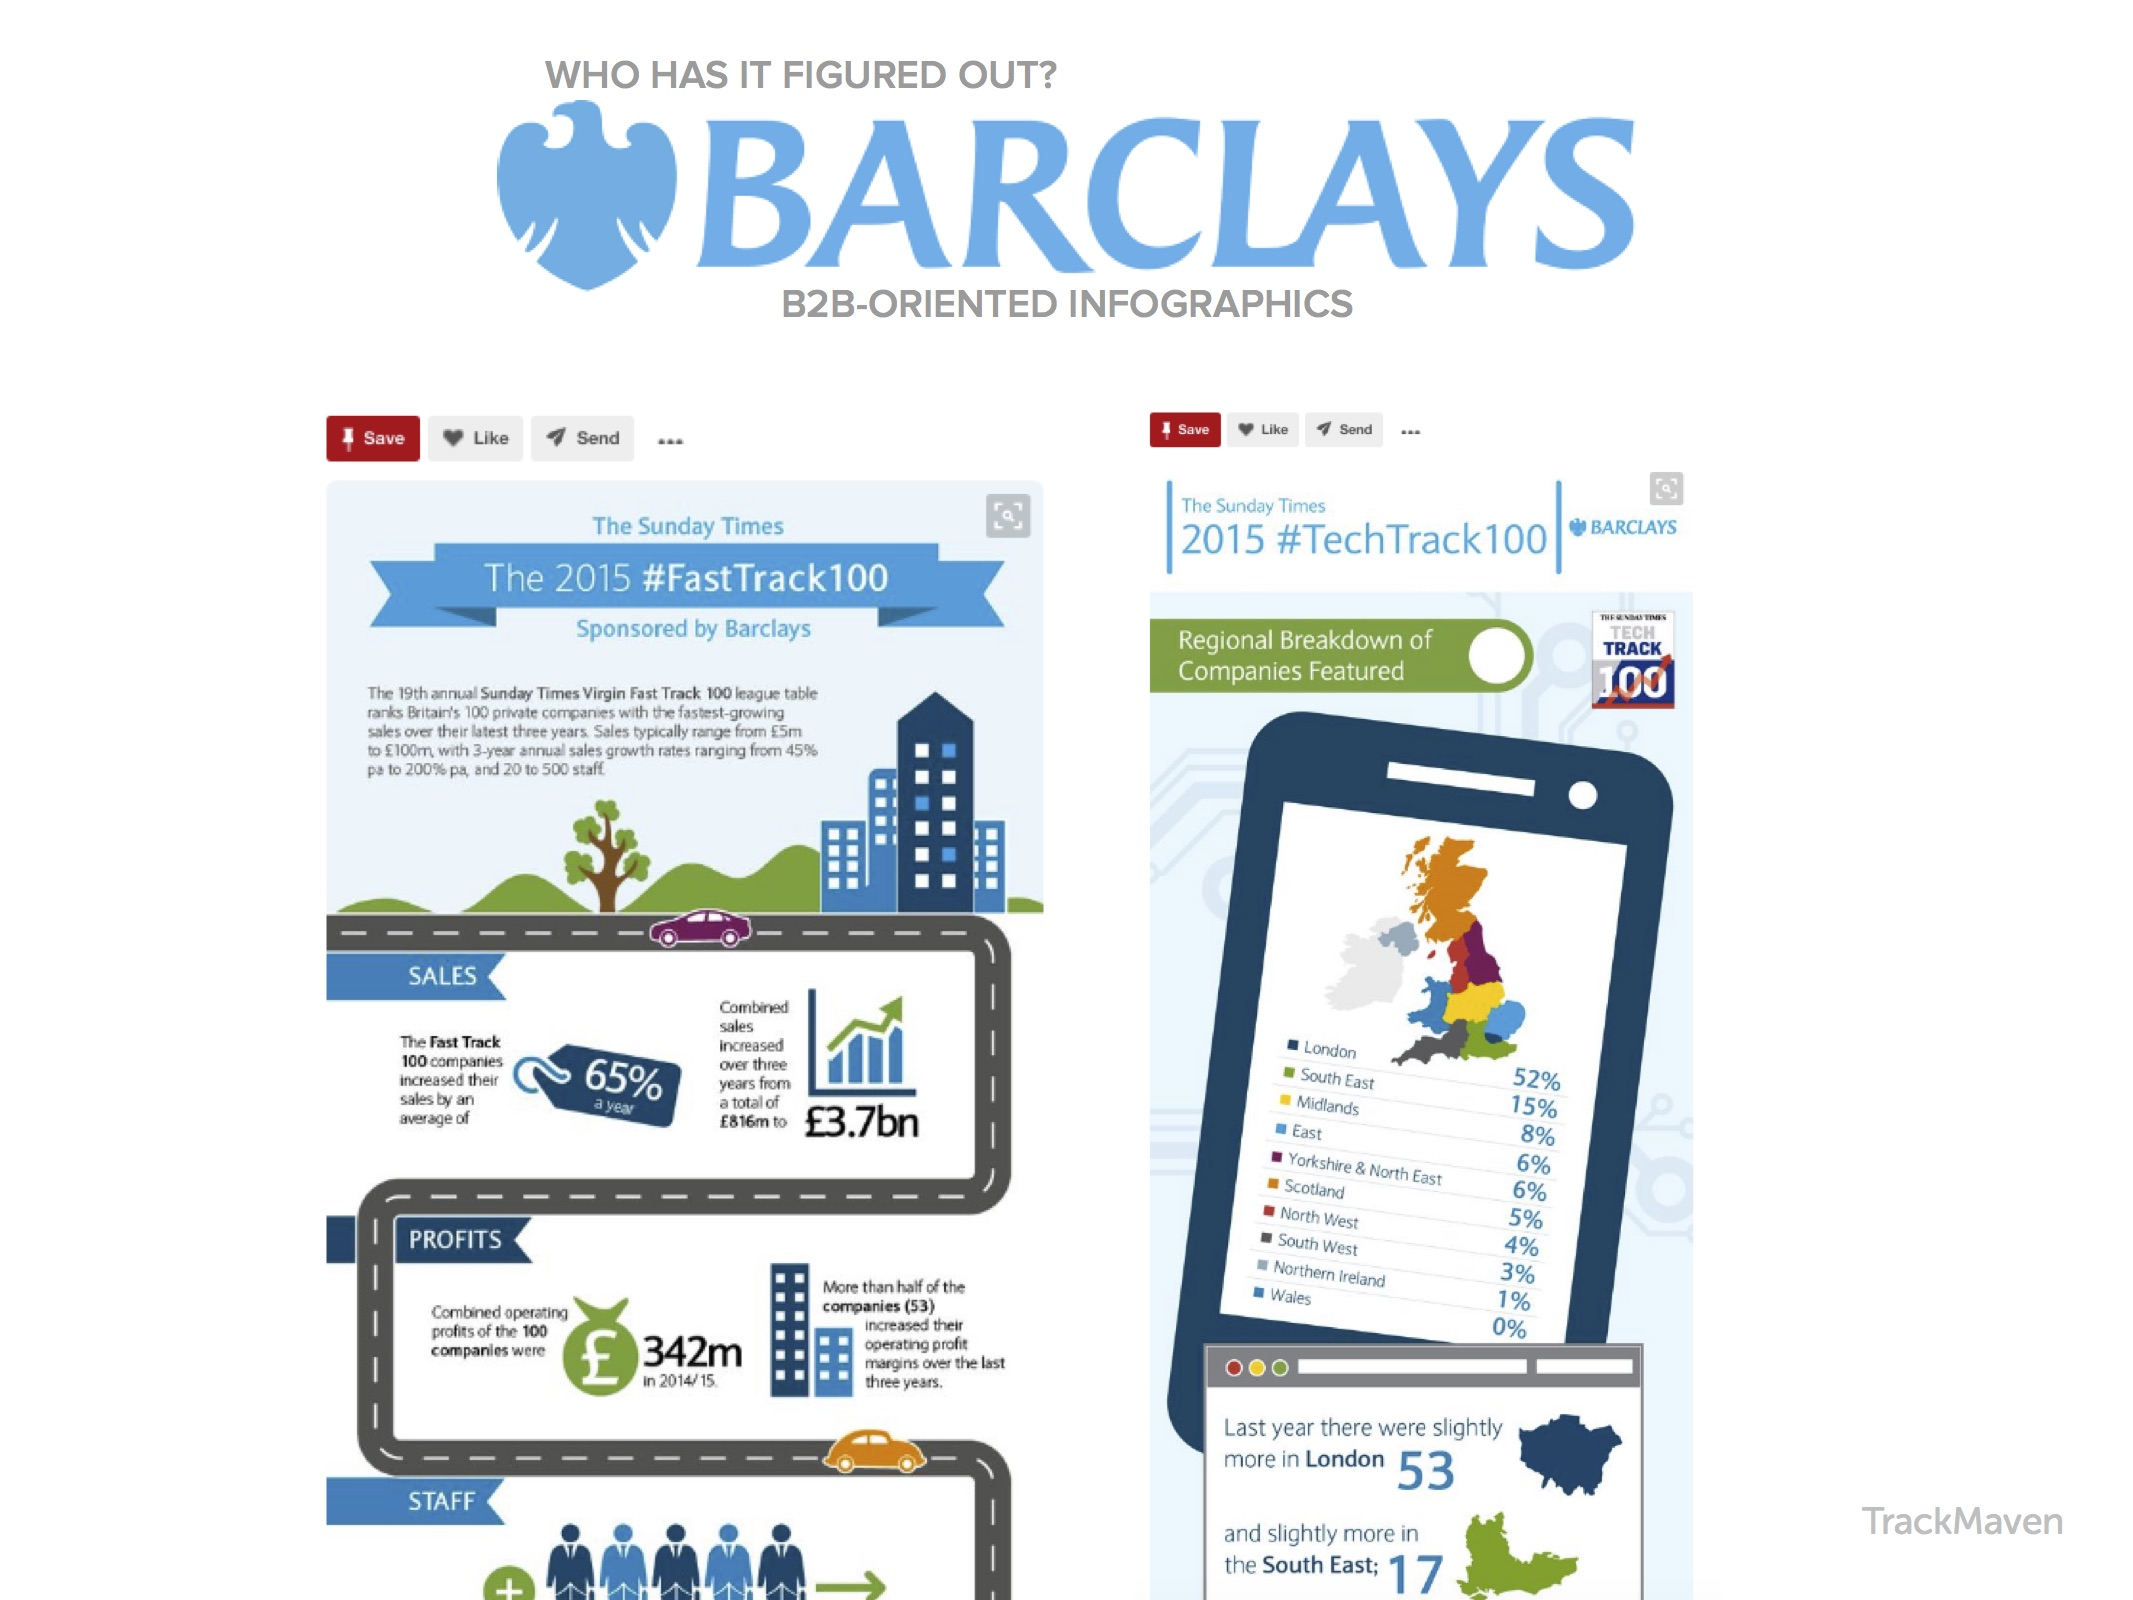 Source: https://www.pinterest.com/barclayswealth/infographics/